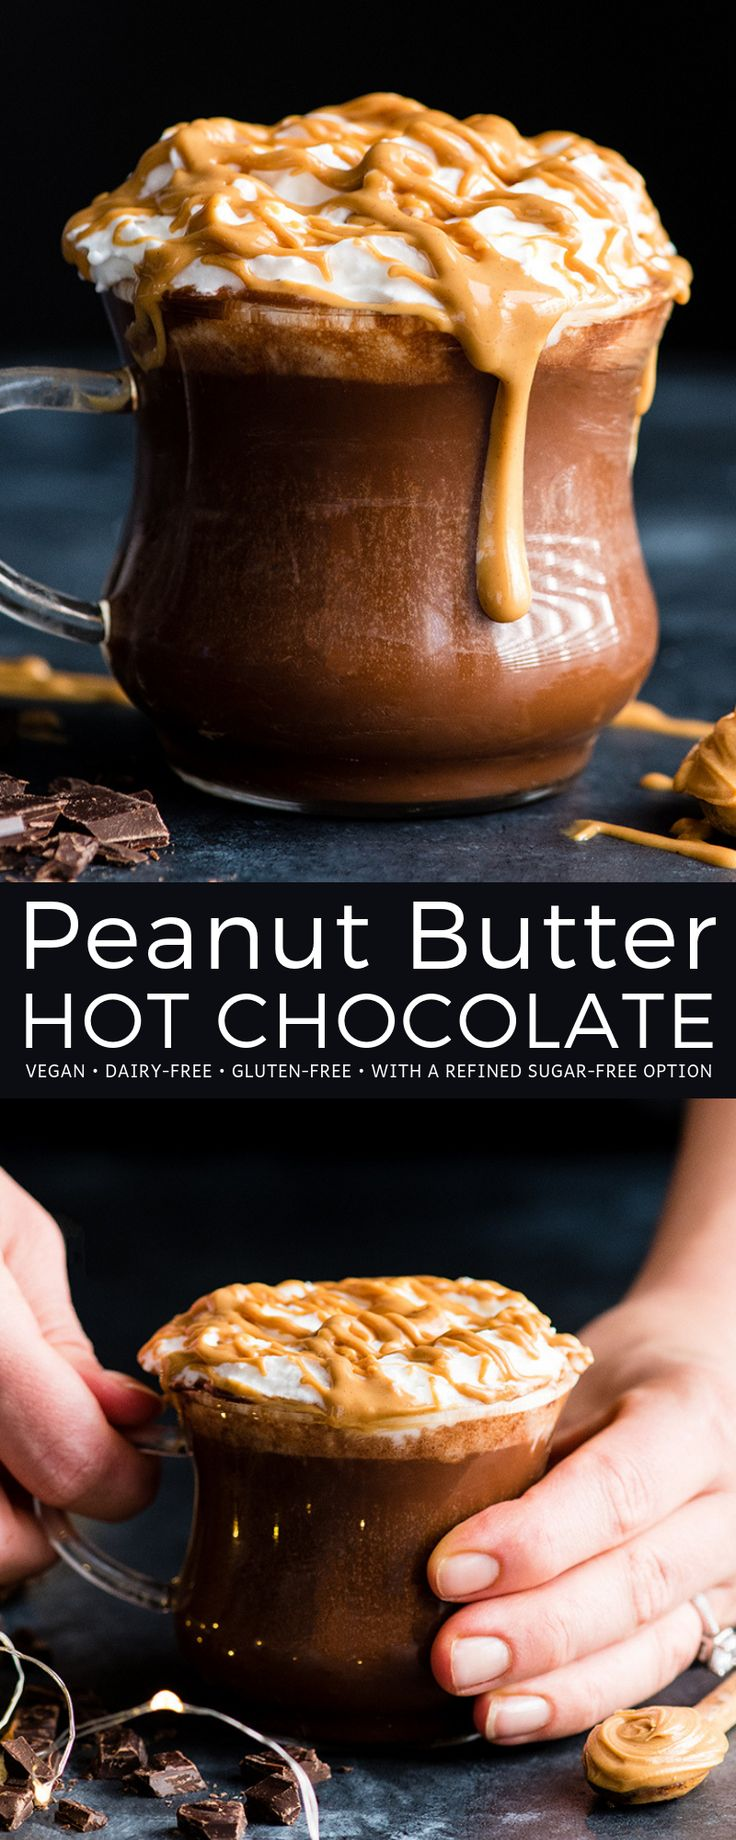 This healthy Homemade Peanut Butter Hot Chocolate Recipe is creamy, chocolatey and bursting with peanut butter flavor! It's vegan, dairy-free, and gluten-free with a refined sugar-free option (but can also be made with regular milk or cream)! This easy homemade hot chocolate is ready in 10 minutes and a perfect warm treat to enjoy after playing in the snow!#peanutbutter #hotchocolate #hotcocoa #healthyrecipe #vegan #dairyfree #glutenfree via @joyfoodsunshine